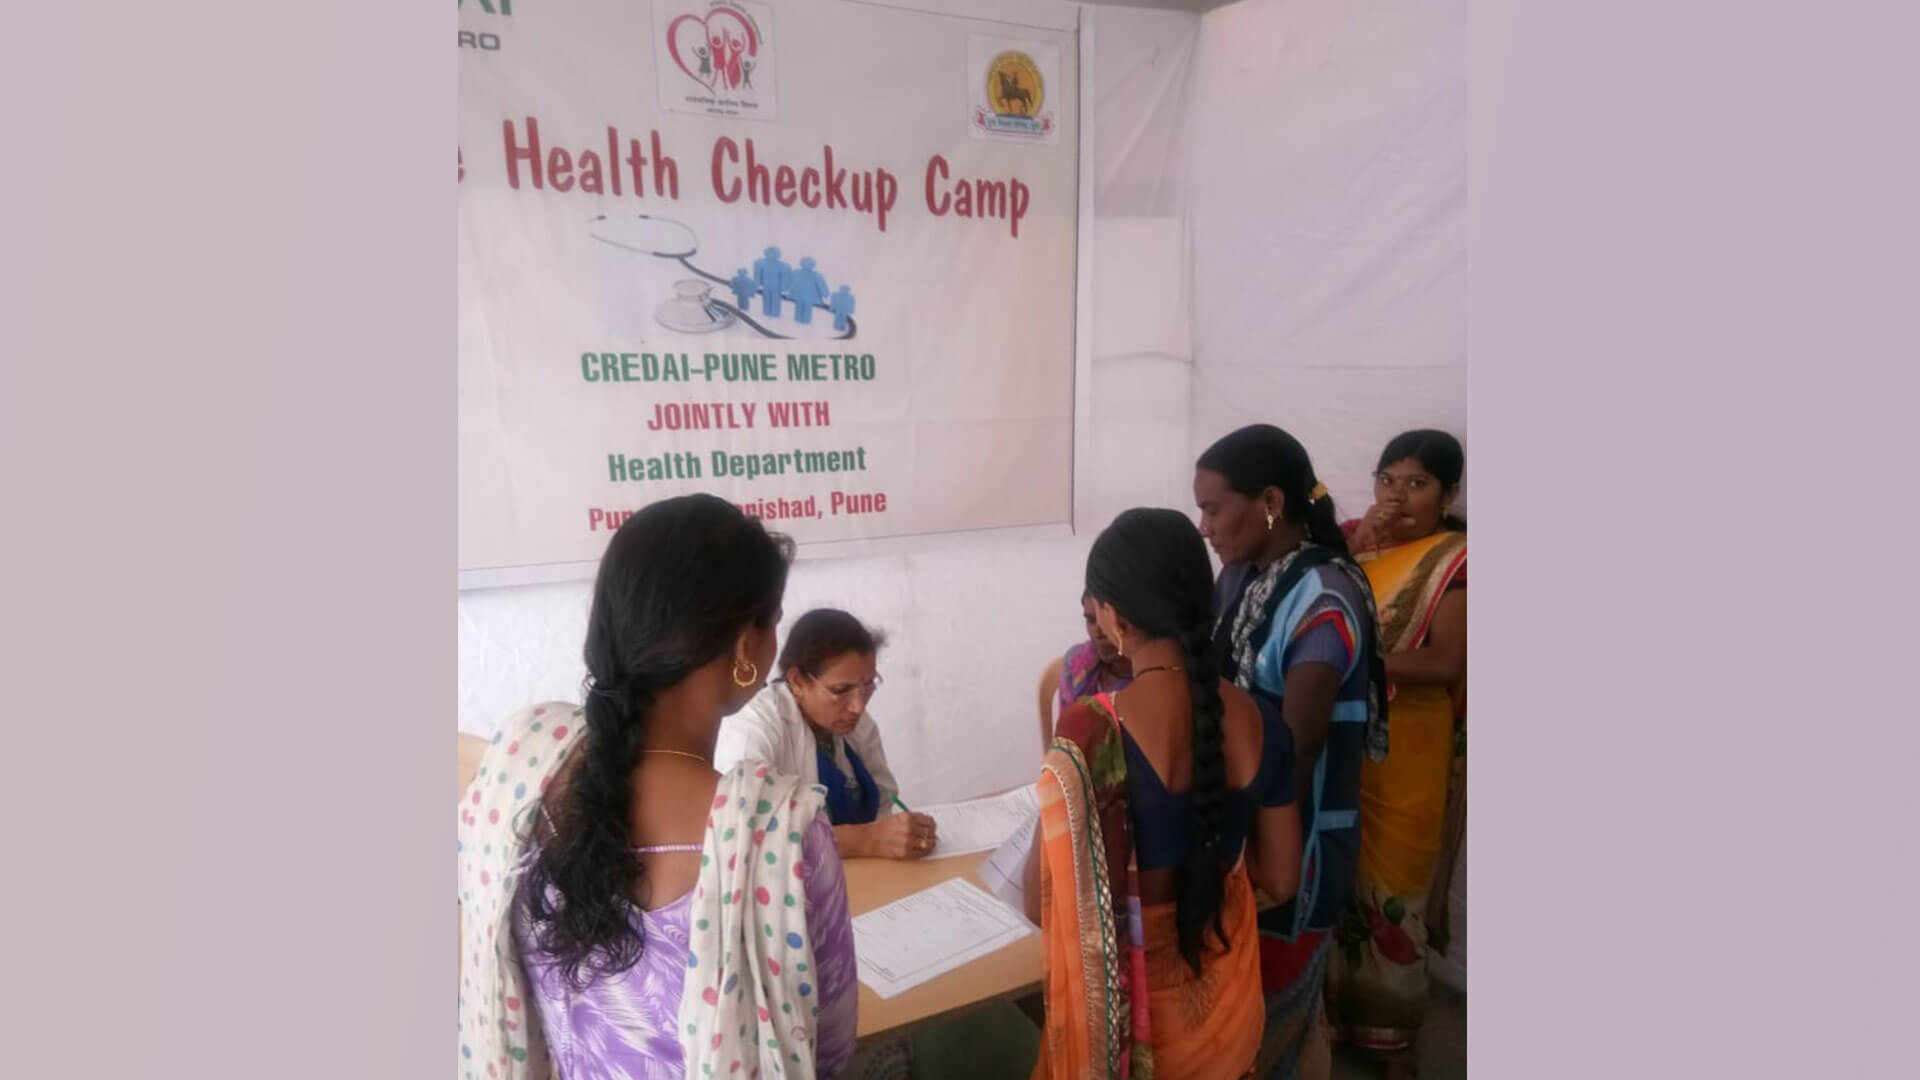 First Health Checkup Camp for Construction Workers  Jointly with Zilla Parishad, Health Department